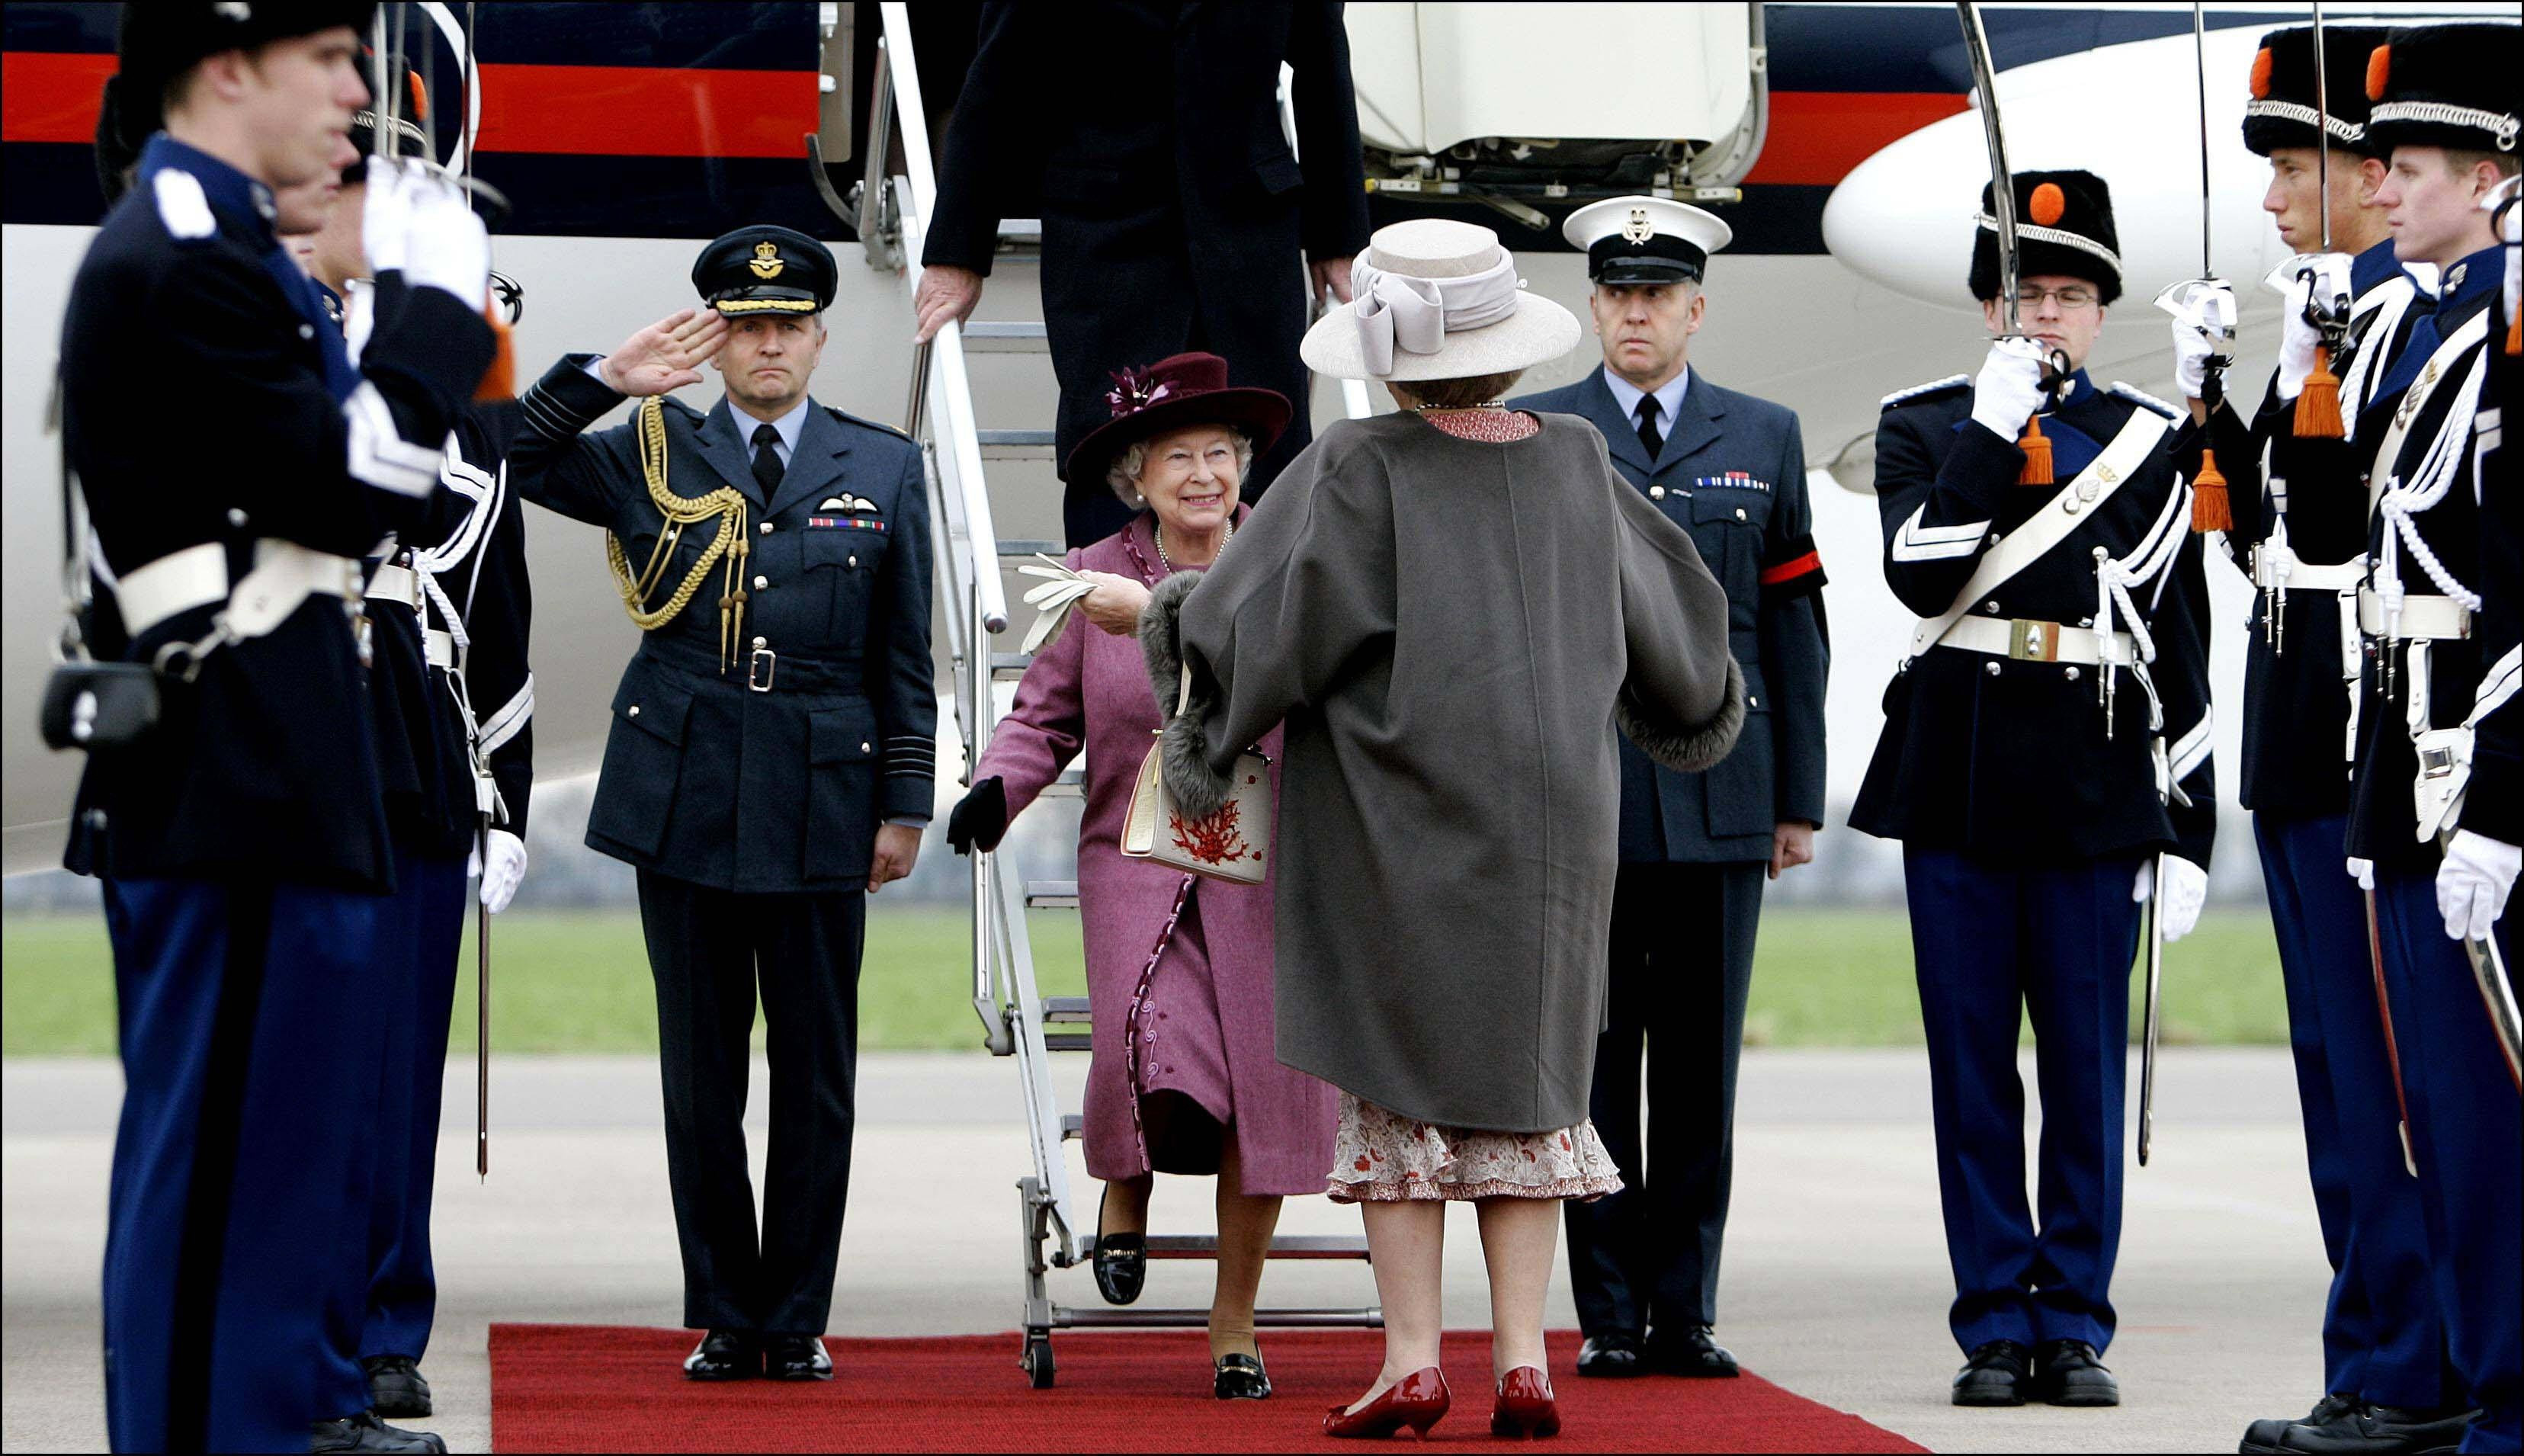 The Queen visits the Netherlands 2007